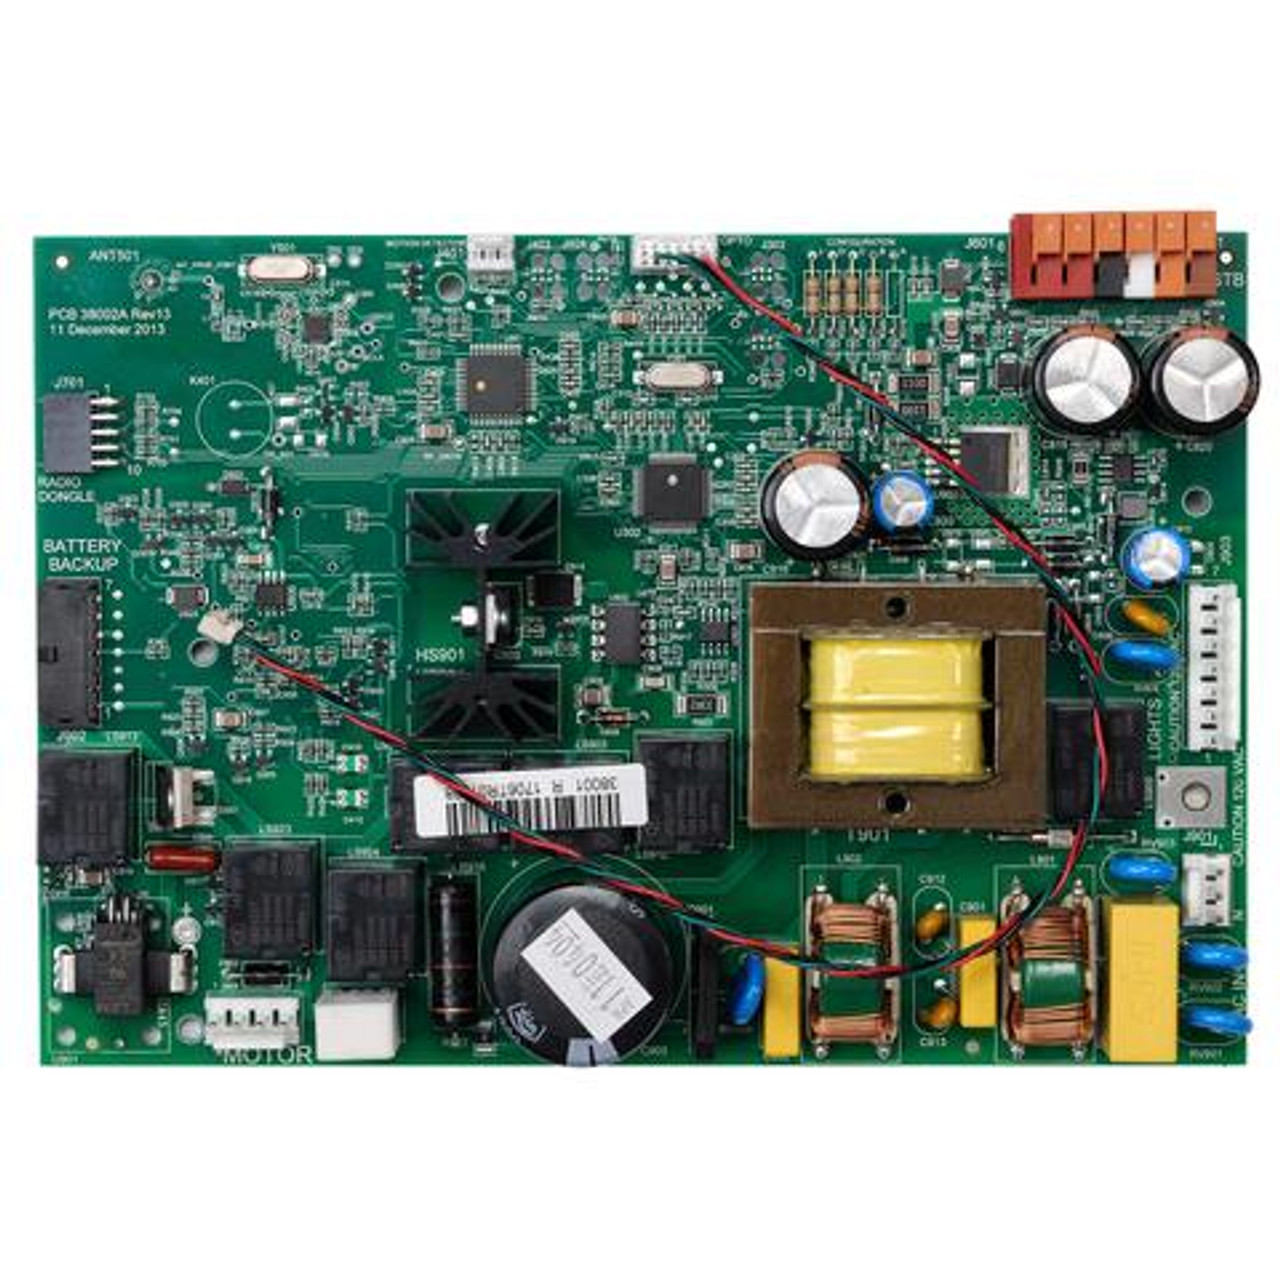 Replacement for Control Board for ChainMax 1000 InteliG 1000 38001R3.S Garage Genie 38874R3.S